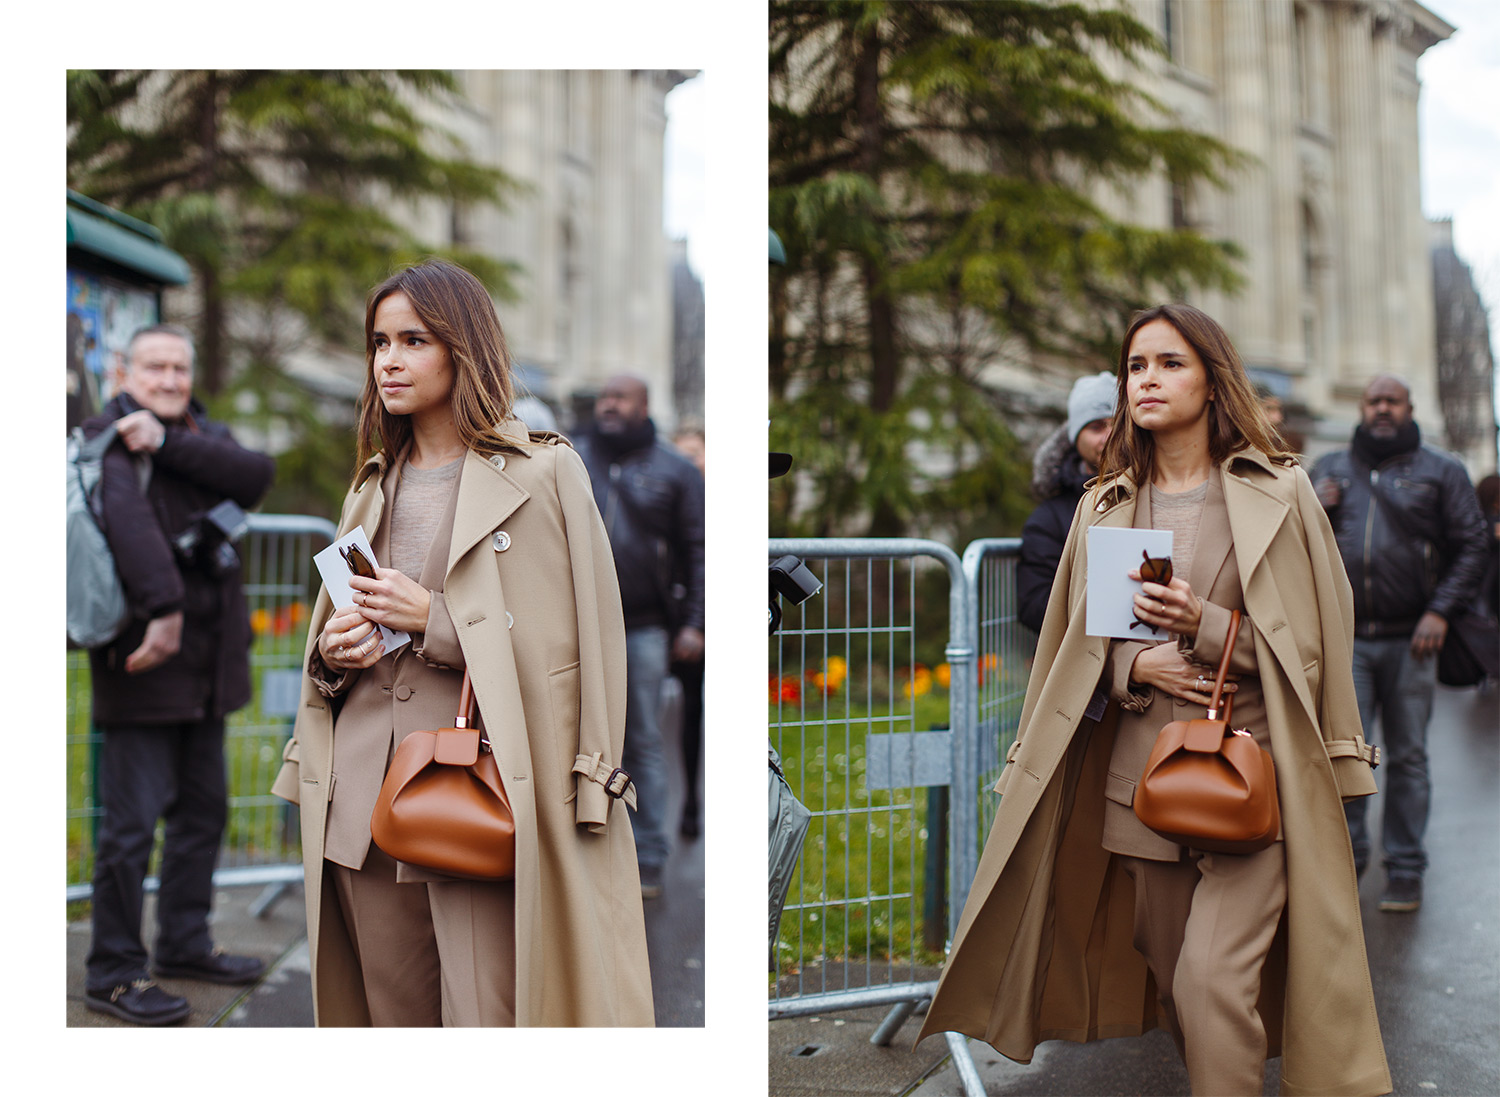 Brown / nude monochrome fashion look Miroslava Duma photographed by Armenyl.com